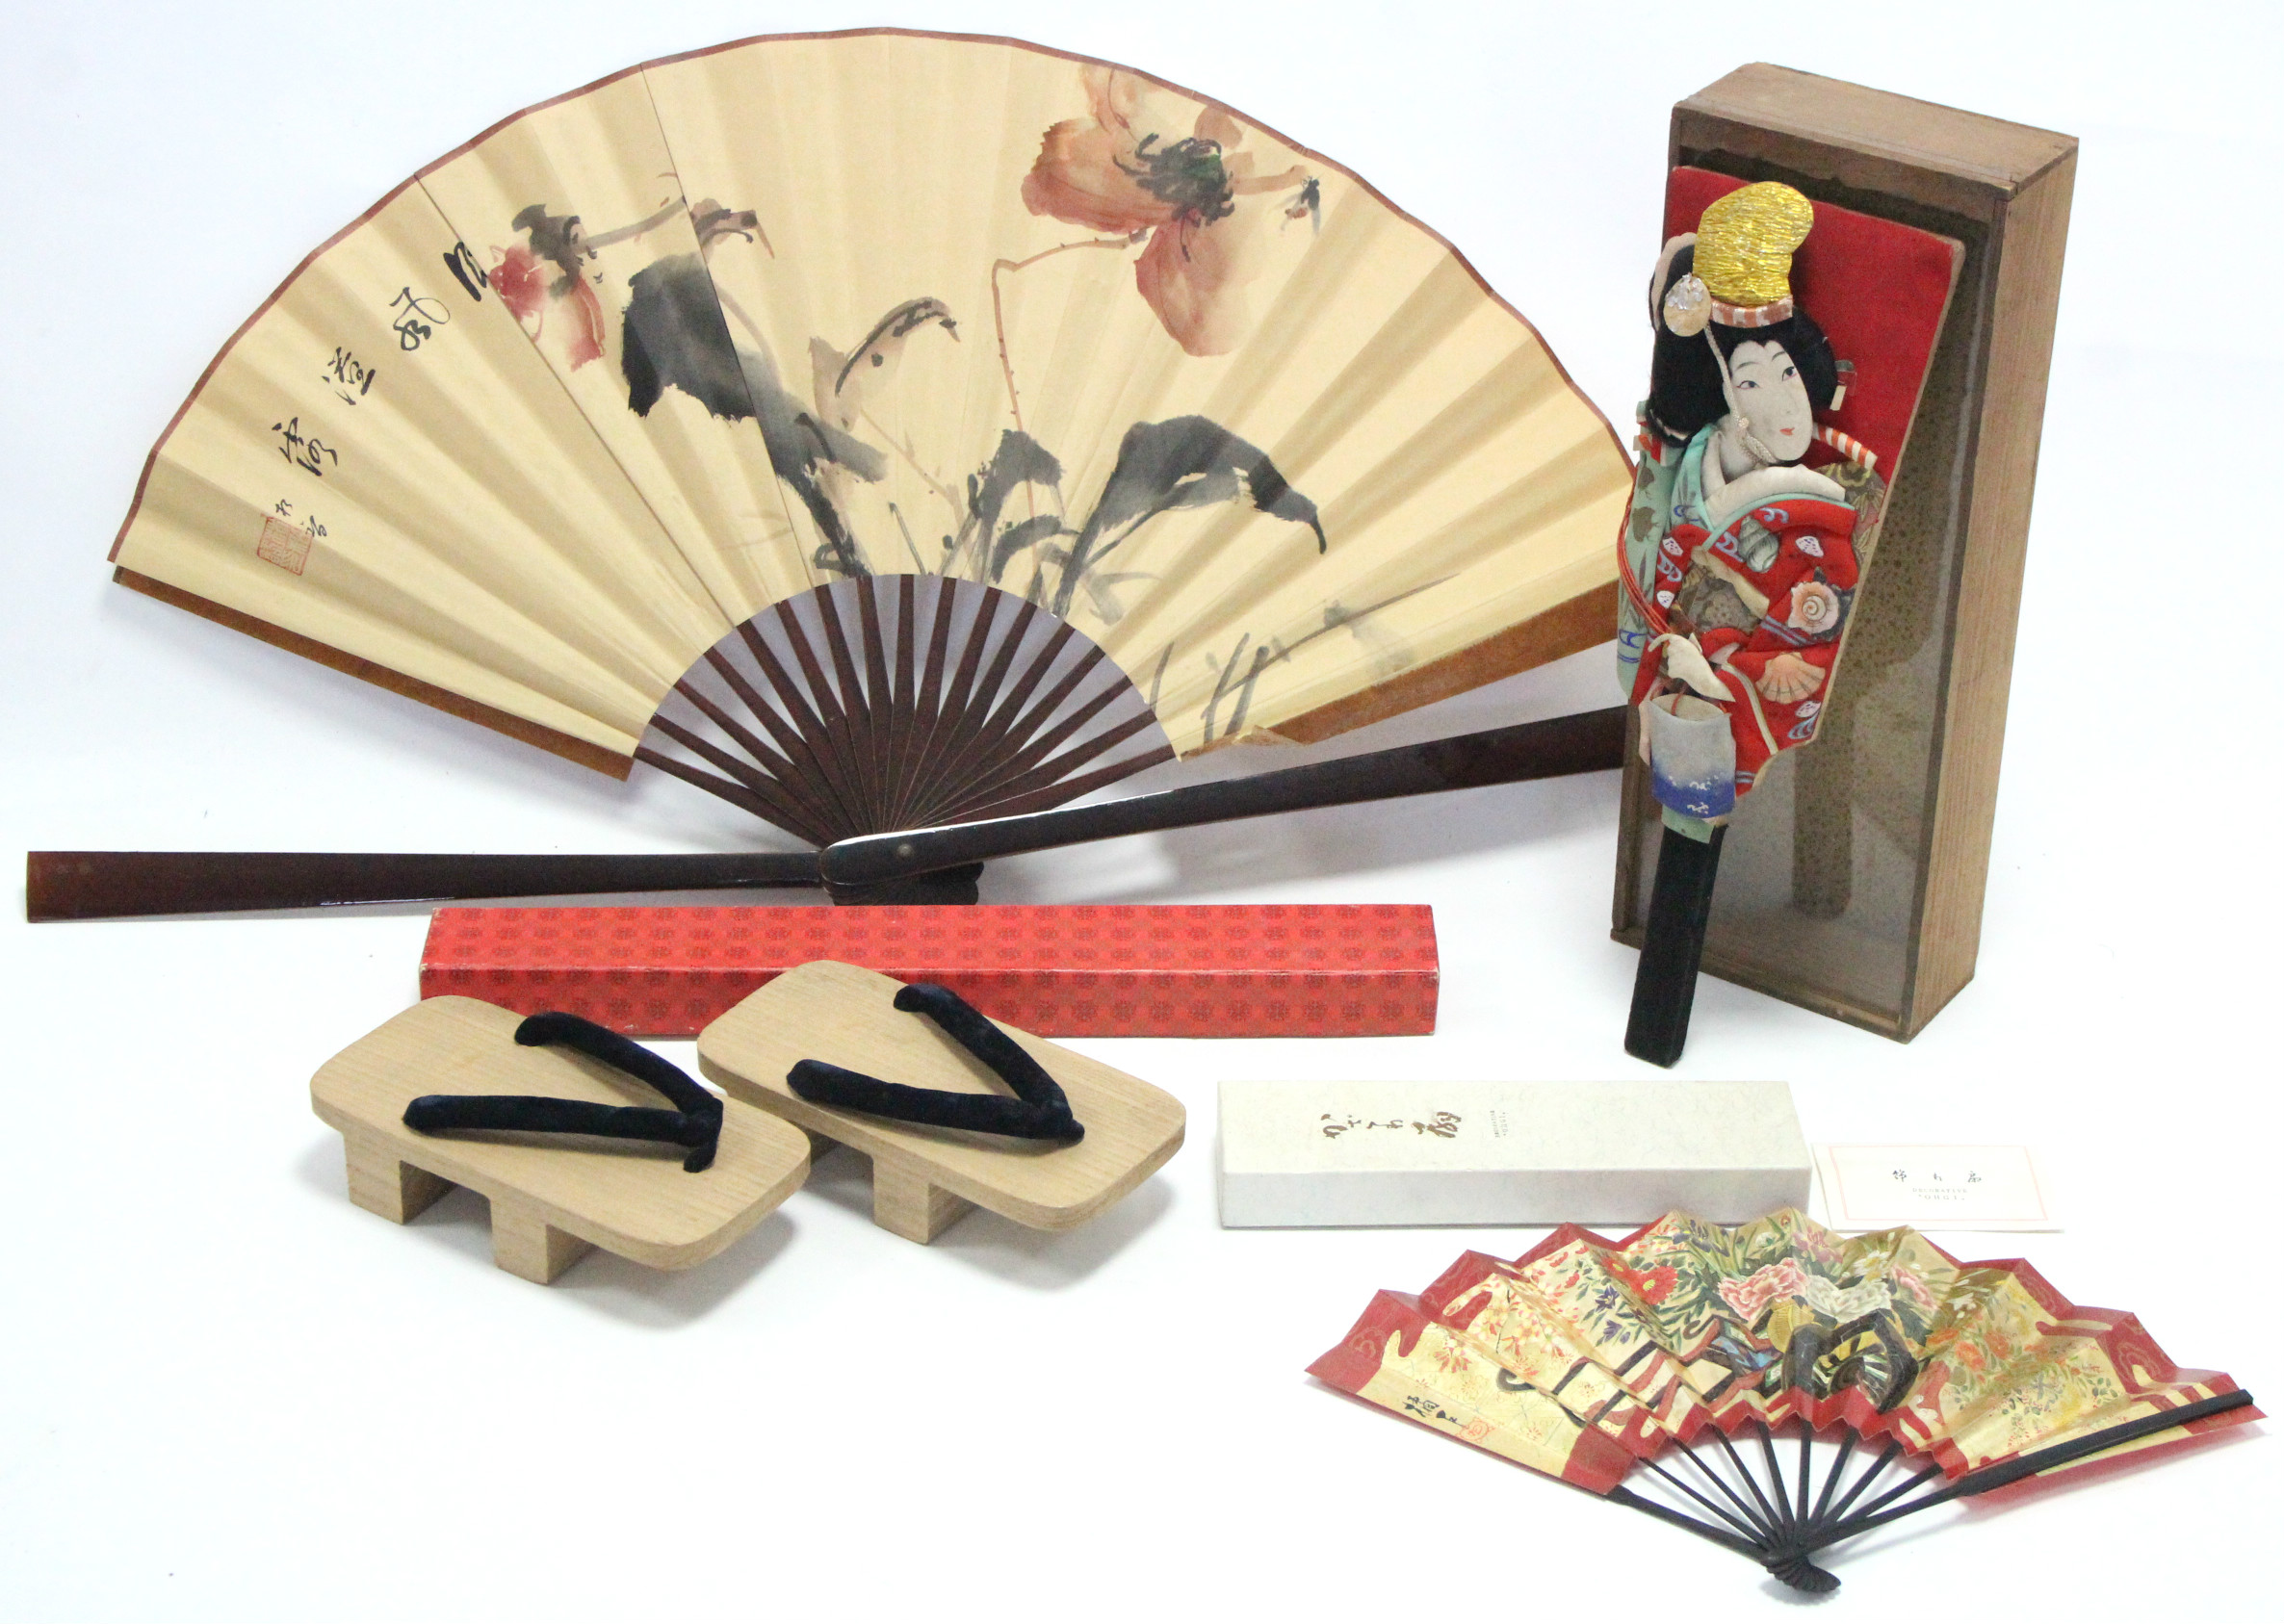 Lot 182 - A Japanese cloth hand puppet in glazed deal case; two Japanese fans; & a pair of Japanese sandals.